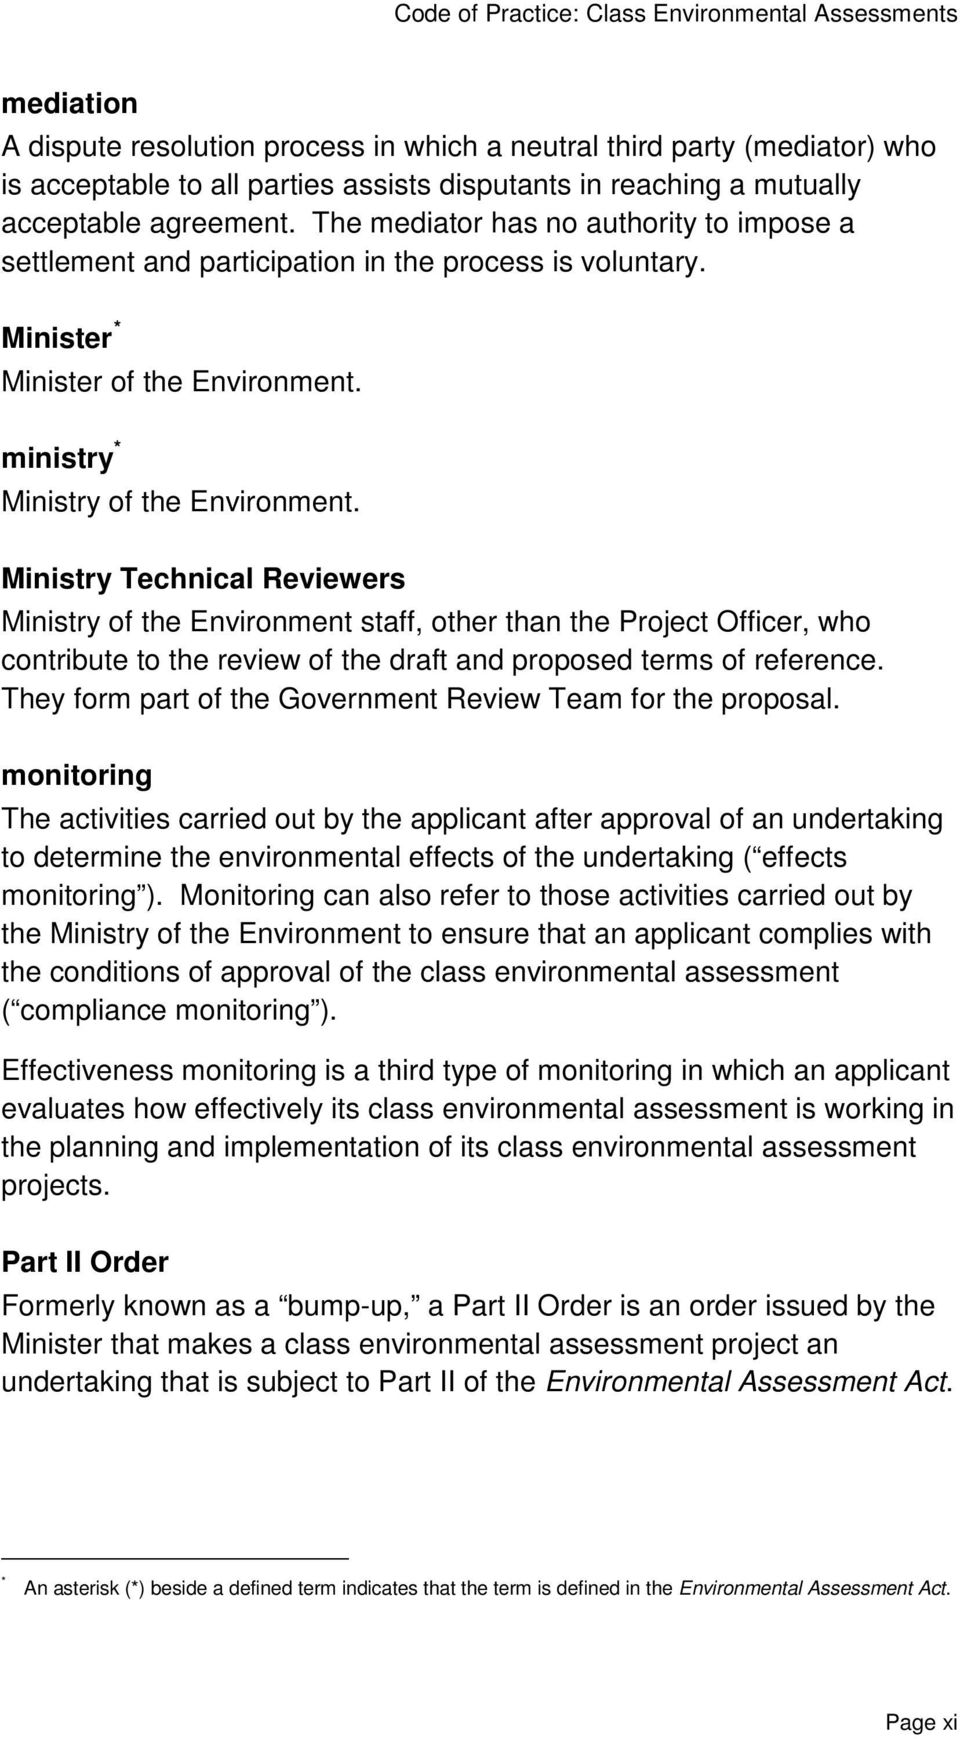 Ministry Technical Reviewers Ministry of the Environment staff, other than the Project Officer, who contribute to the review of the draft and proposed terms of reference.